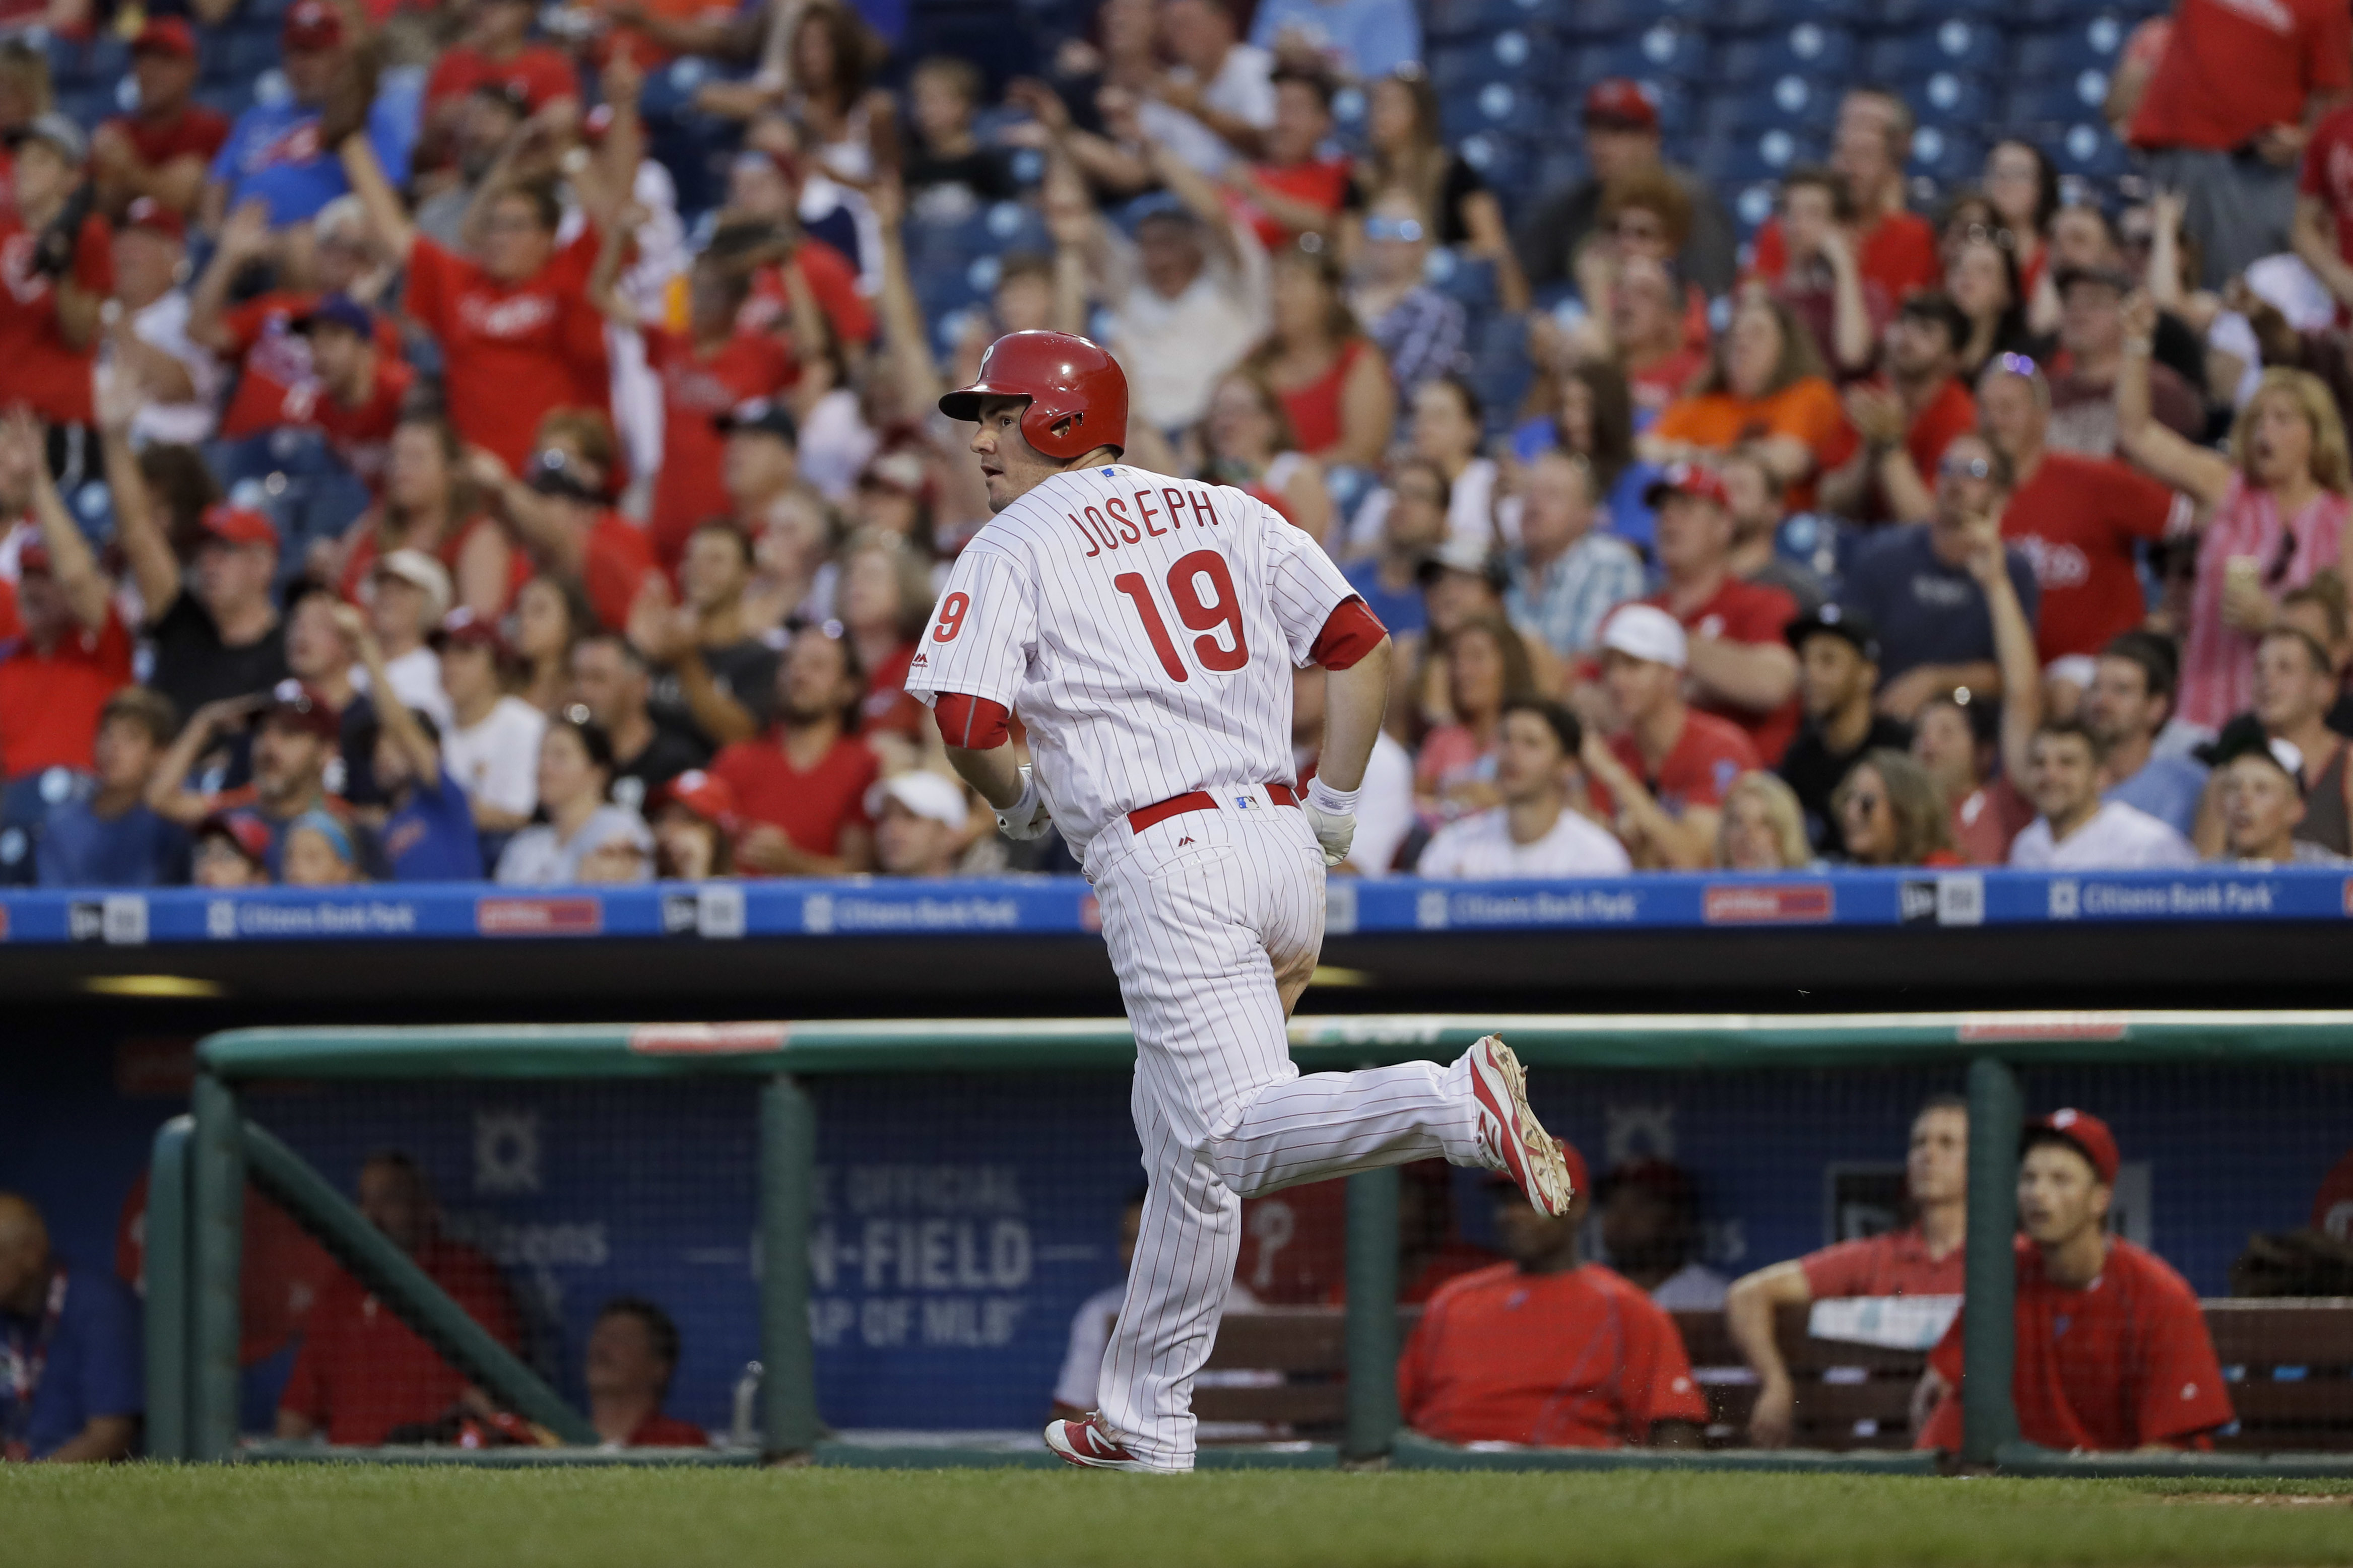 Philadelphia Phillies' Tommy Joseph rounds the bases after hitting a home run off Miami Marlins starting pitcher Jose Urena during the fourth inning of a baseball game, Tuesday, July 19, 2016, in Philadelphia. (AP Photo/Matt Slocum)